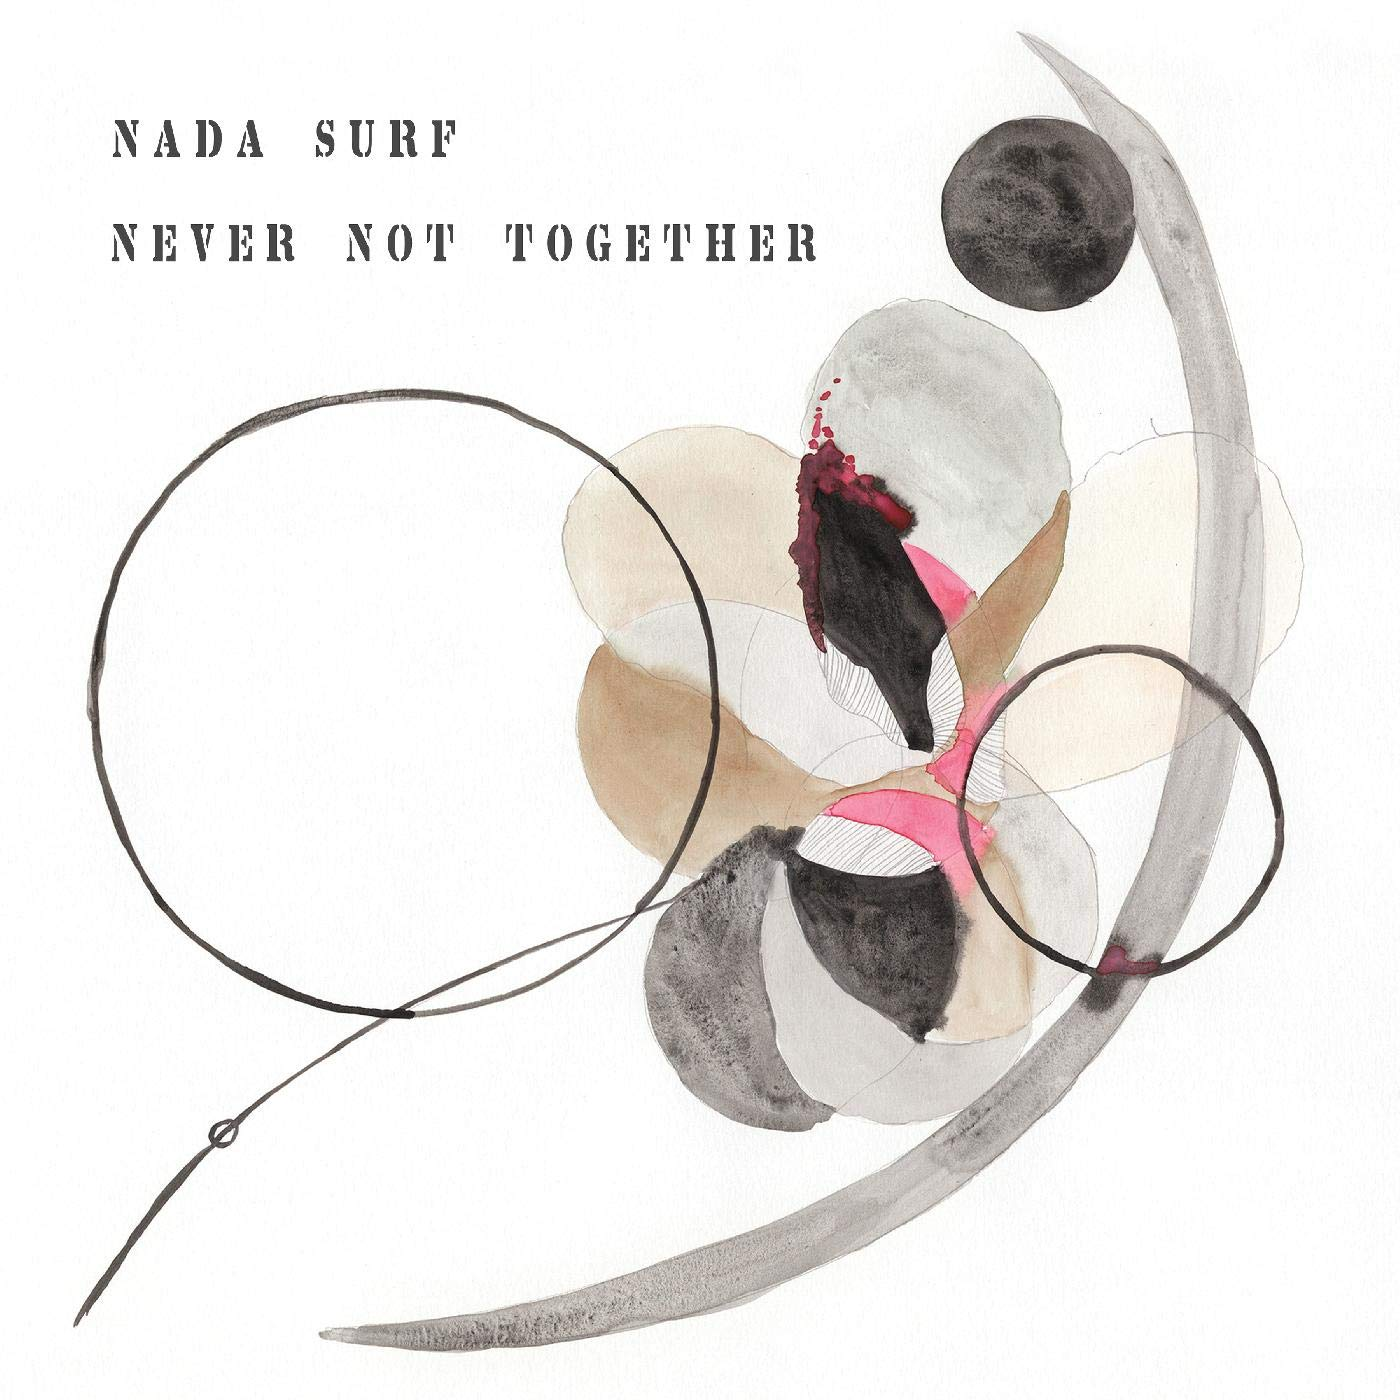 NADA SURF - Never Not Together - Amazon.com Music